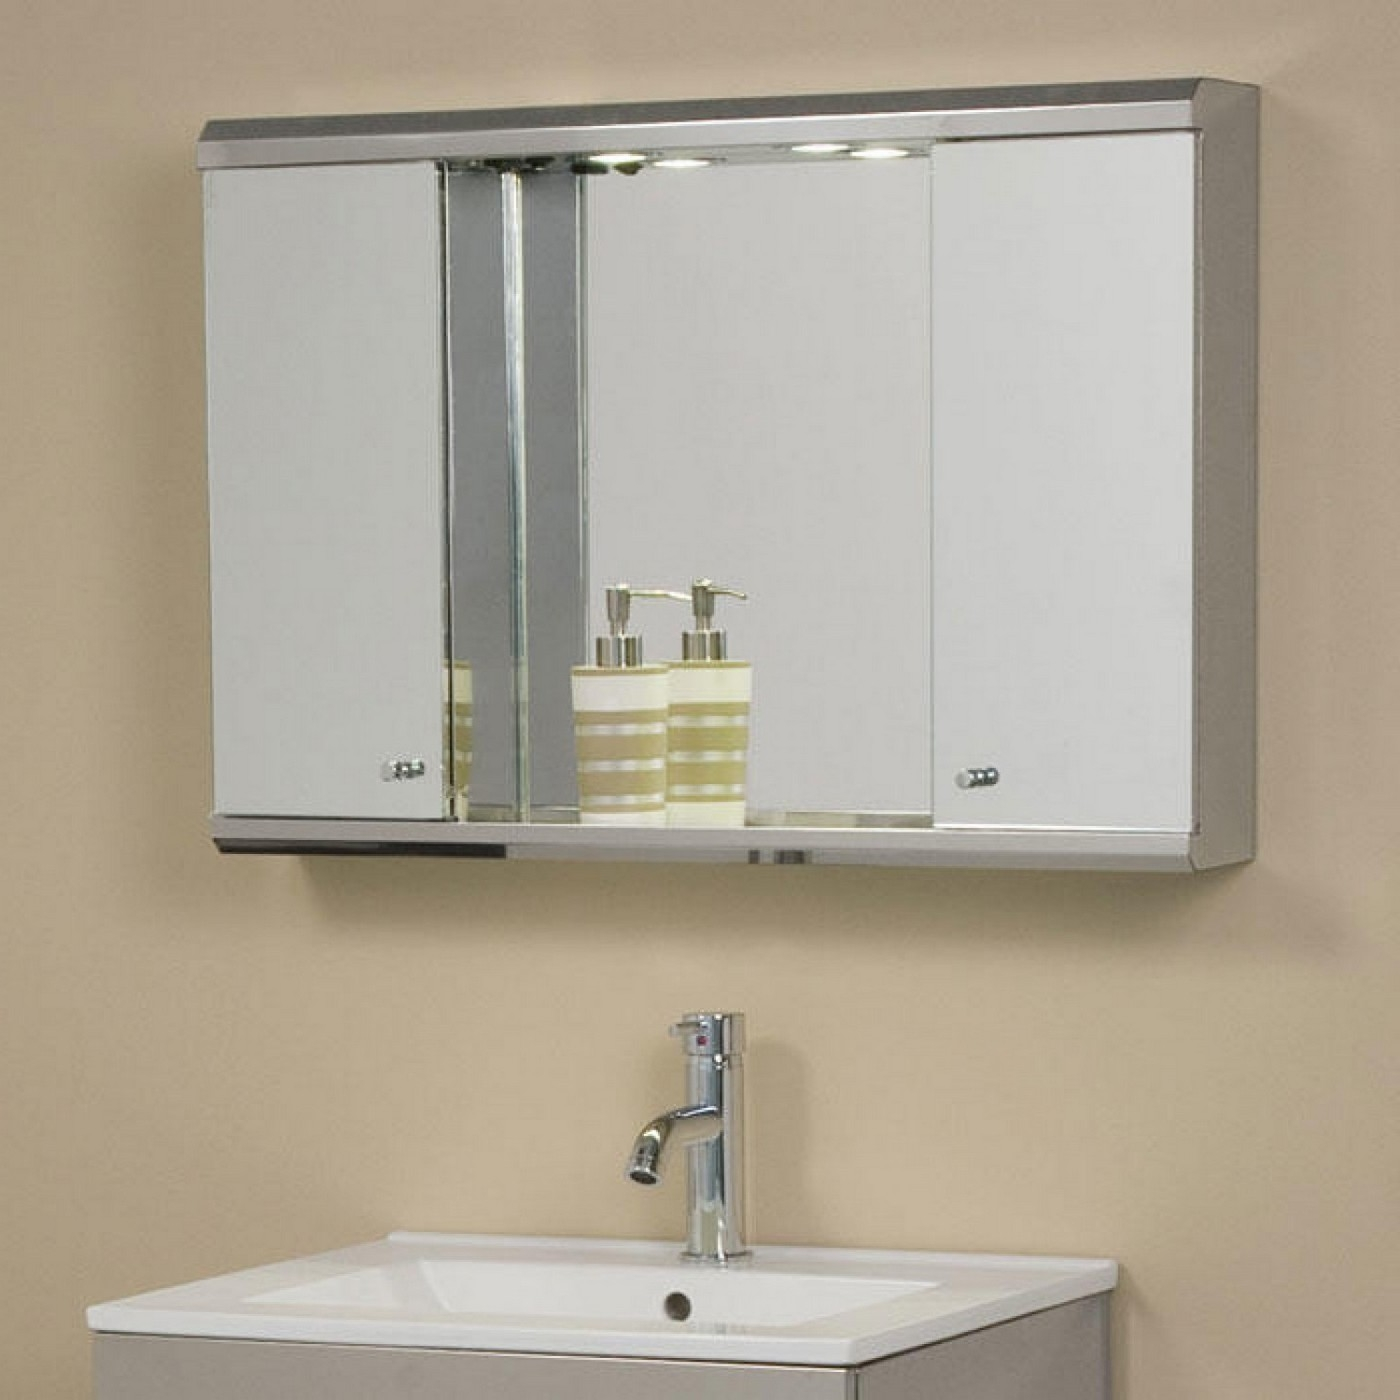 Horizontal Bathroom Medicine Cabinets